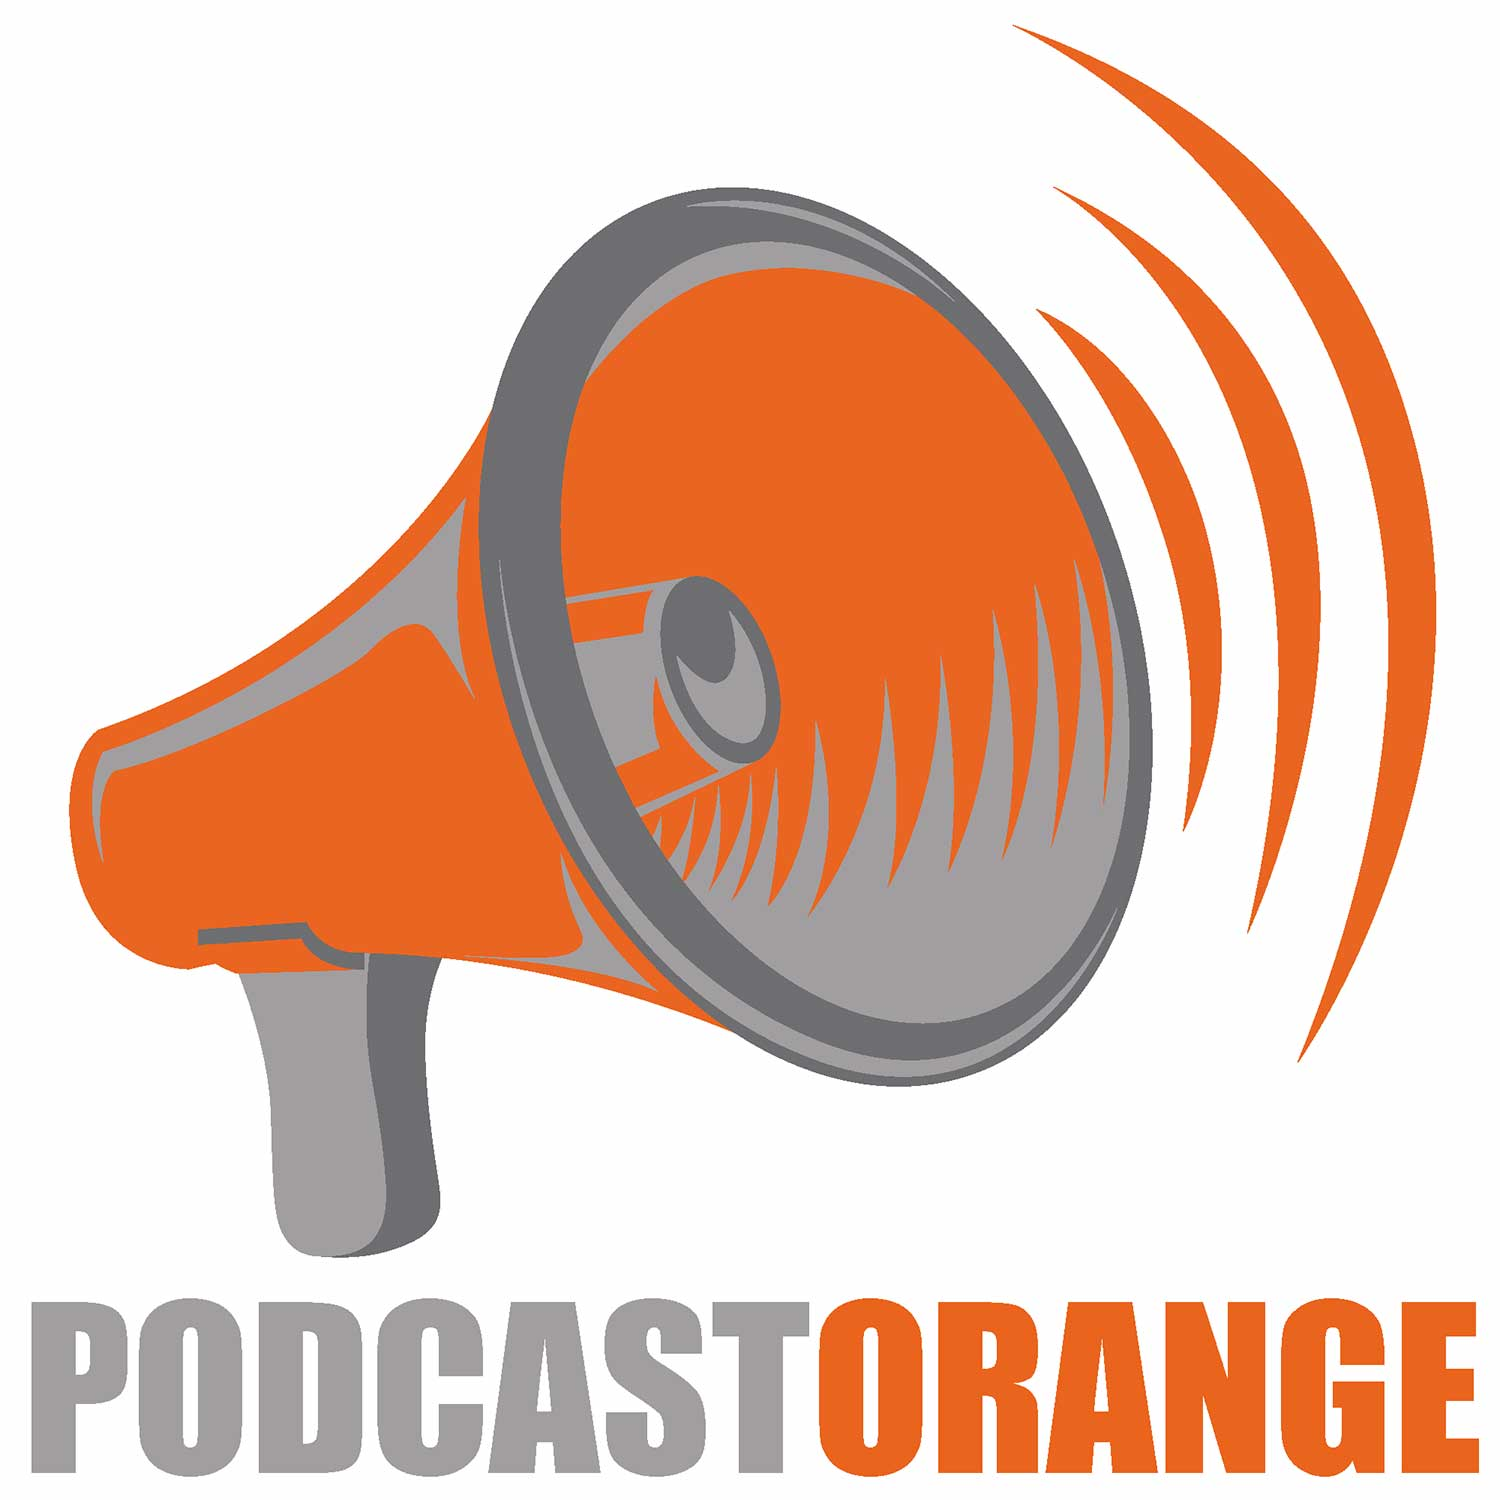 Podcast Orange